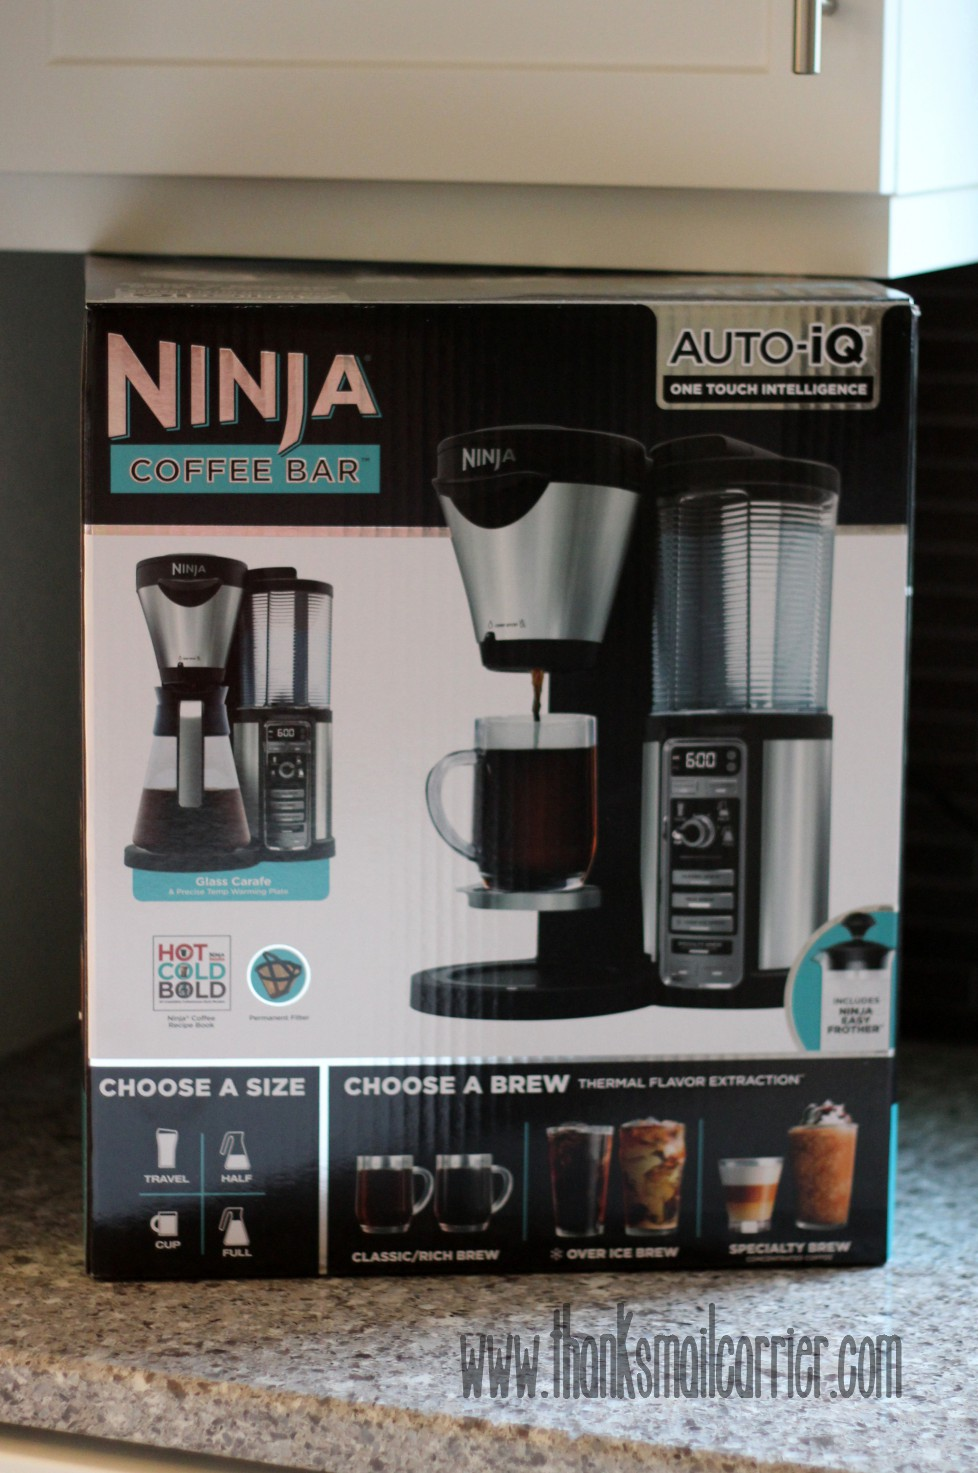 Ninja Coffee Bar coffeemaker